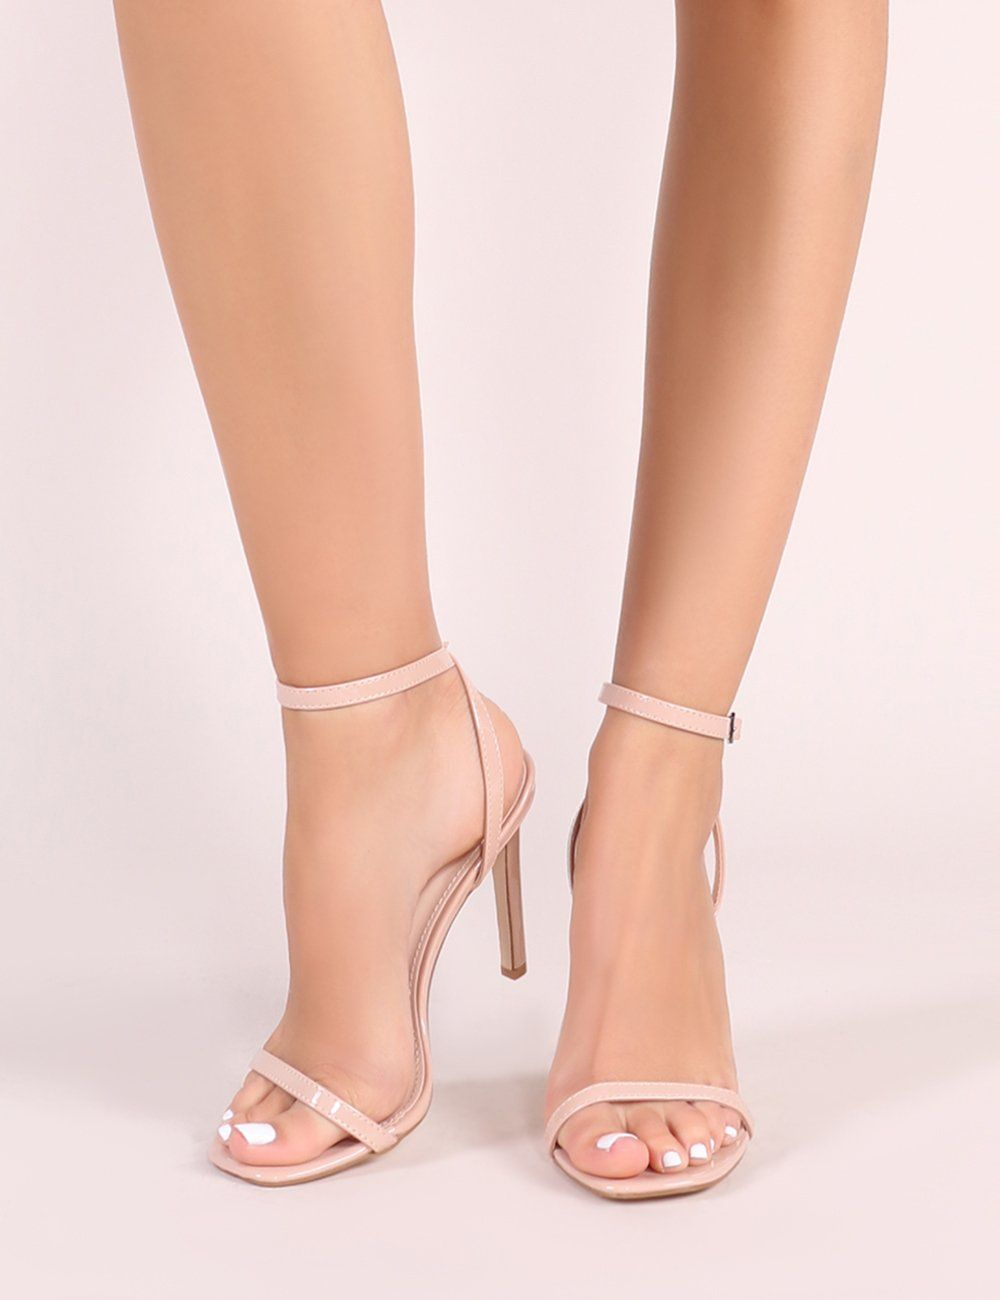 2b13e532f59 Notion Squared Toe Barely There Heels in Nude Patent in 2019 | Shoes ...